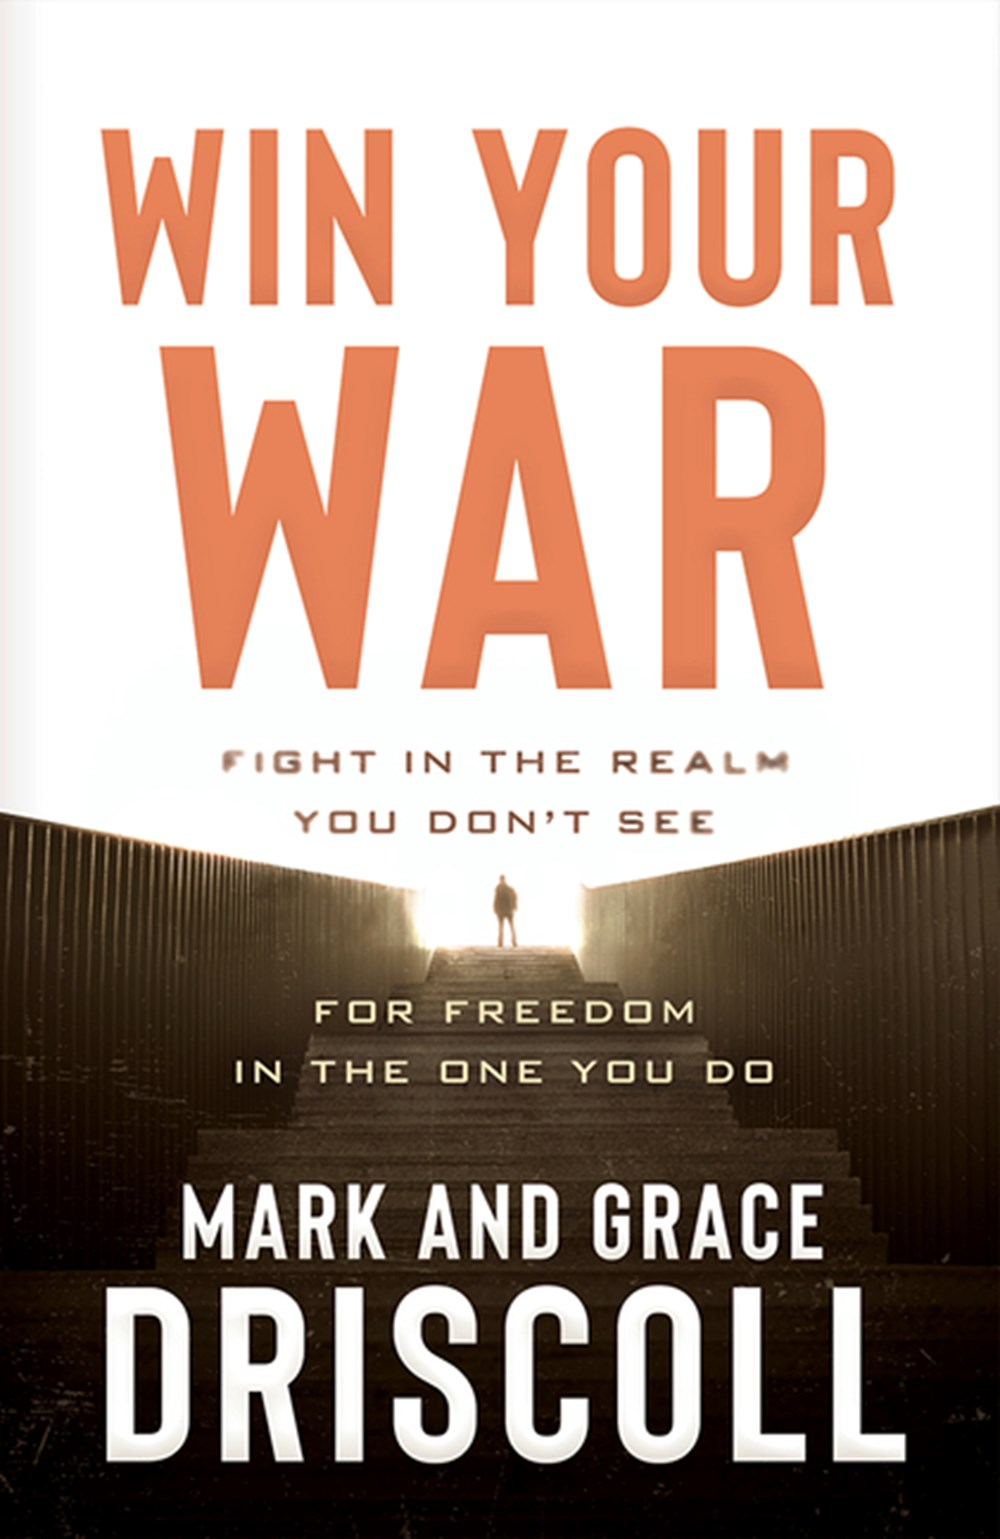 Win Your War Fight in the Realm You Don't See for Freedom in the One You Do